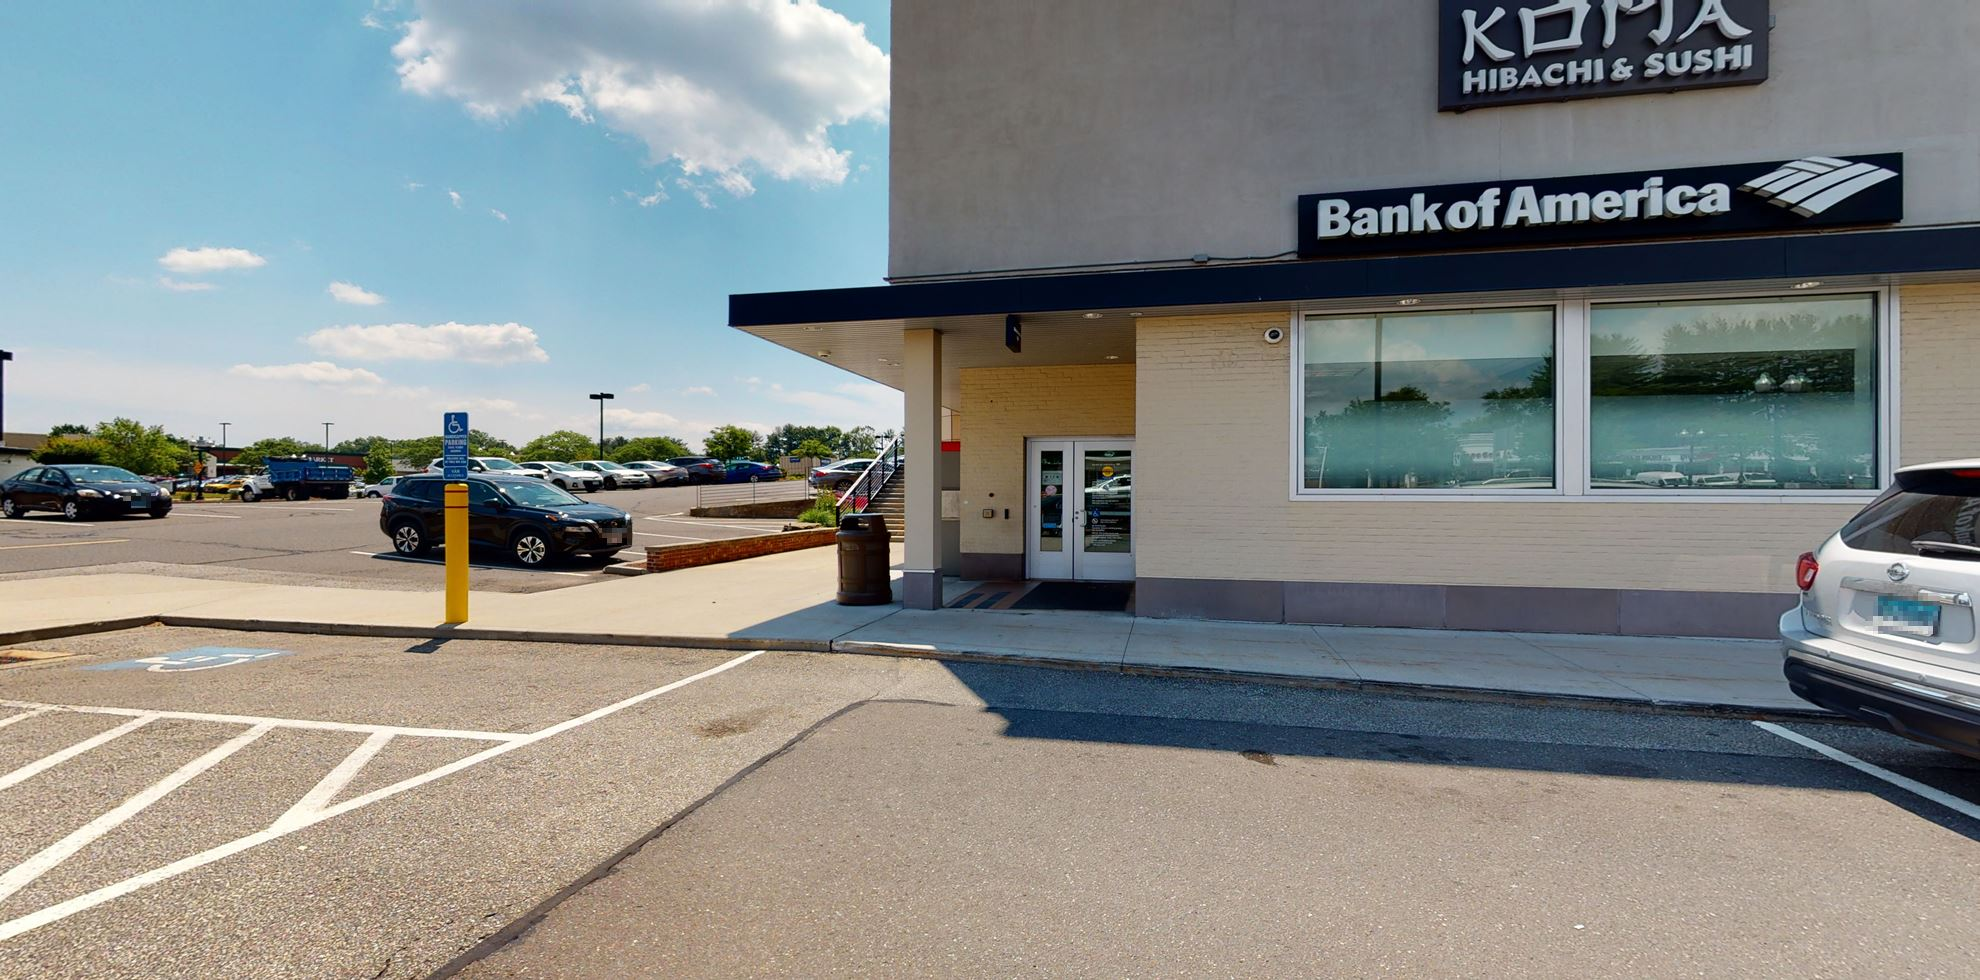 Bank of America financial center with drive-thru ATM   2523 Albany Ave, West Hartford, CT 06117